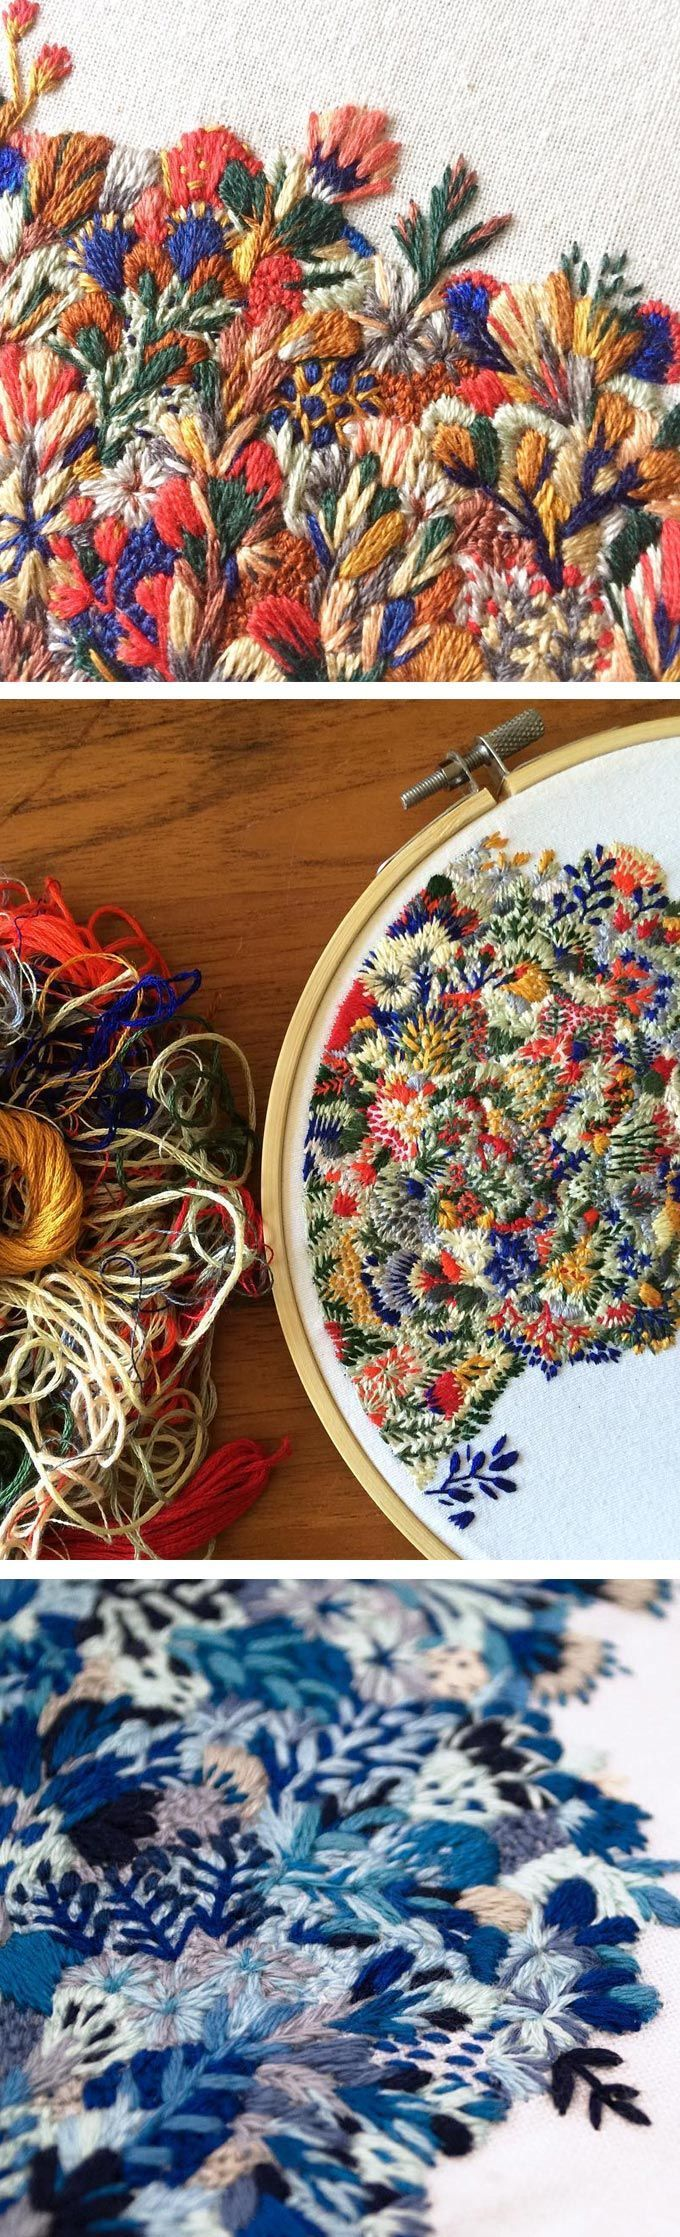 Embroidery by Slow Stitch Sophie | floral embroidery | hoop art | floral hoop art